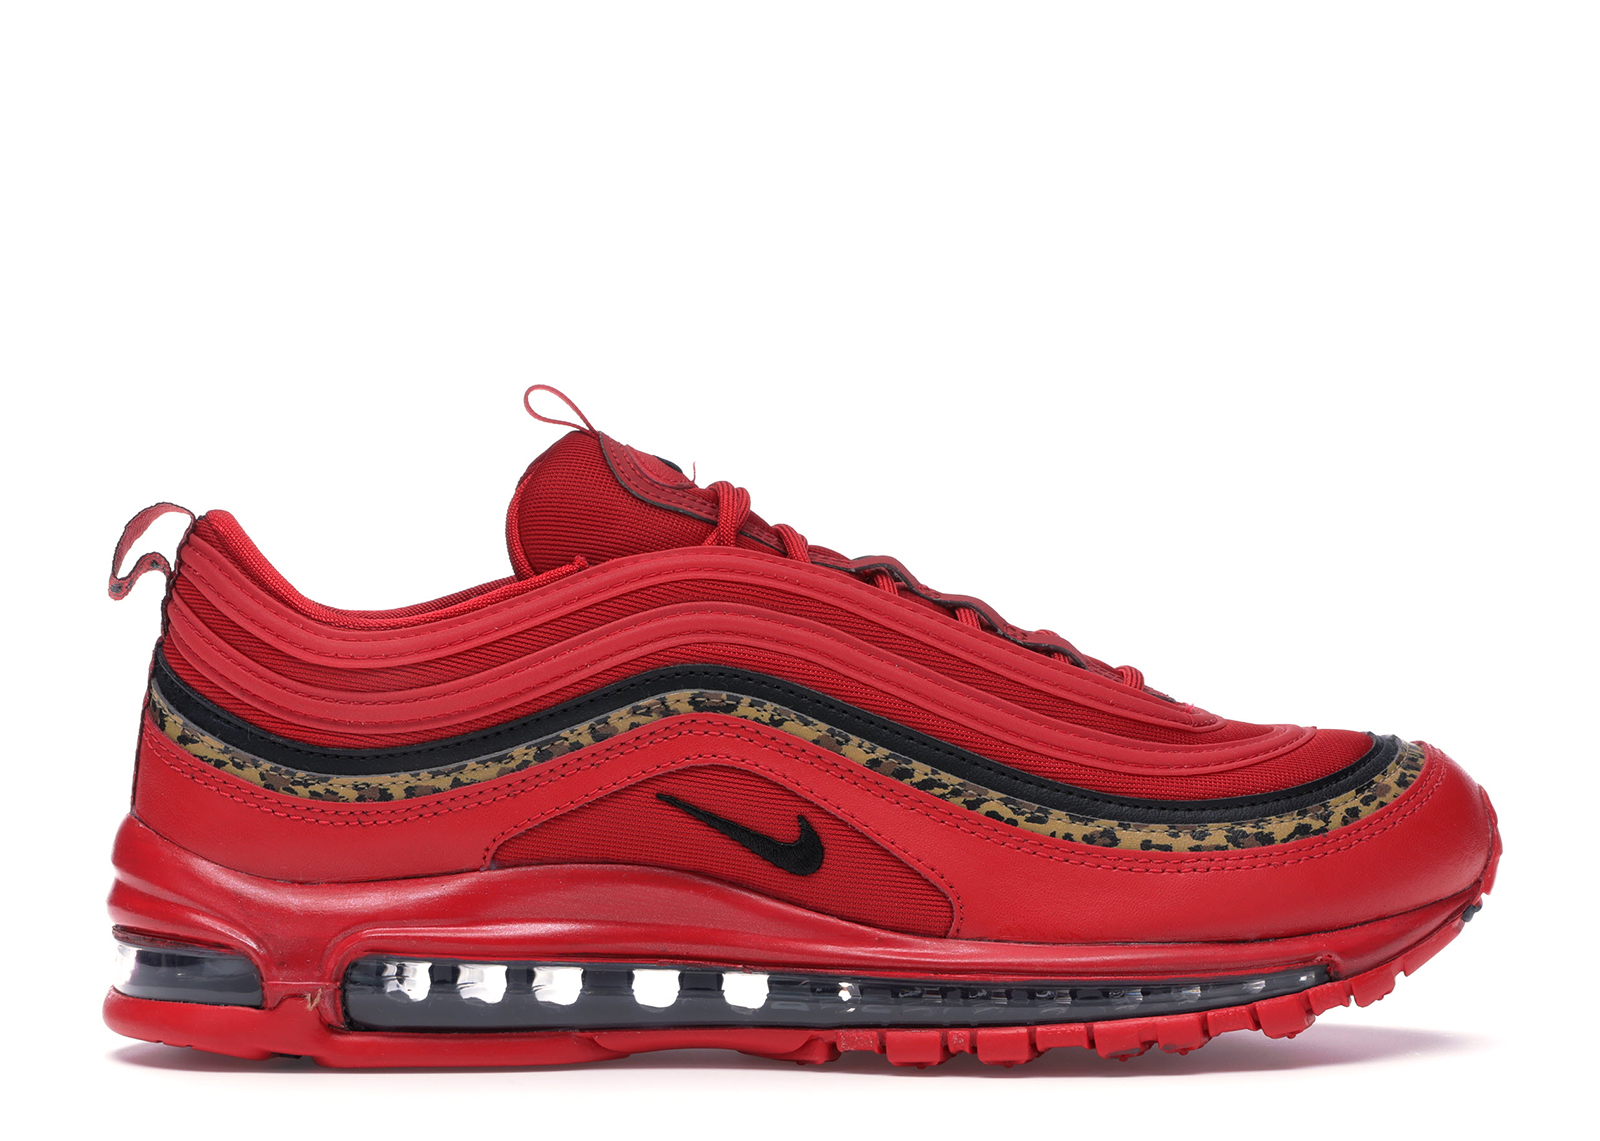 Nike Air Max 97 Leopard Pack Red (W) - BV6113-600